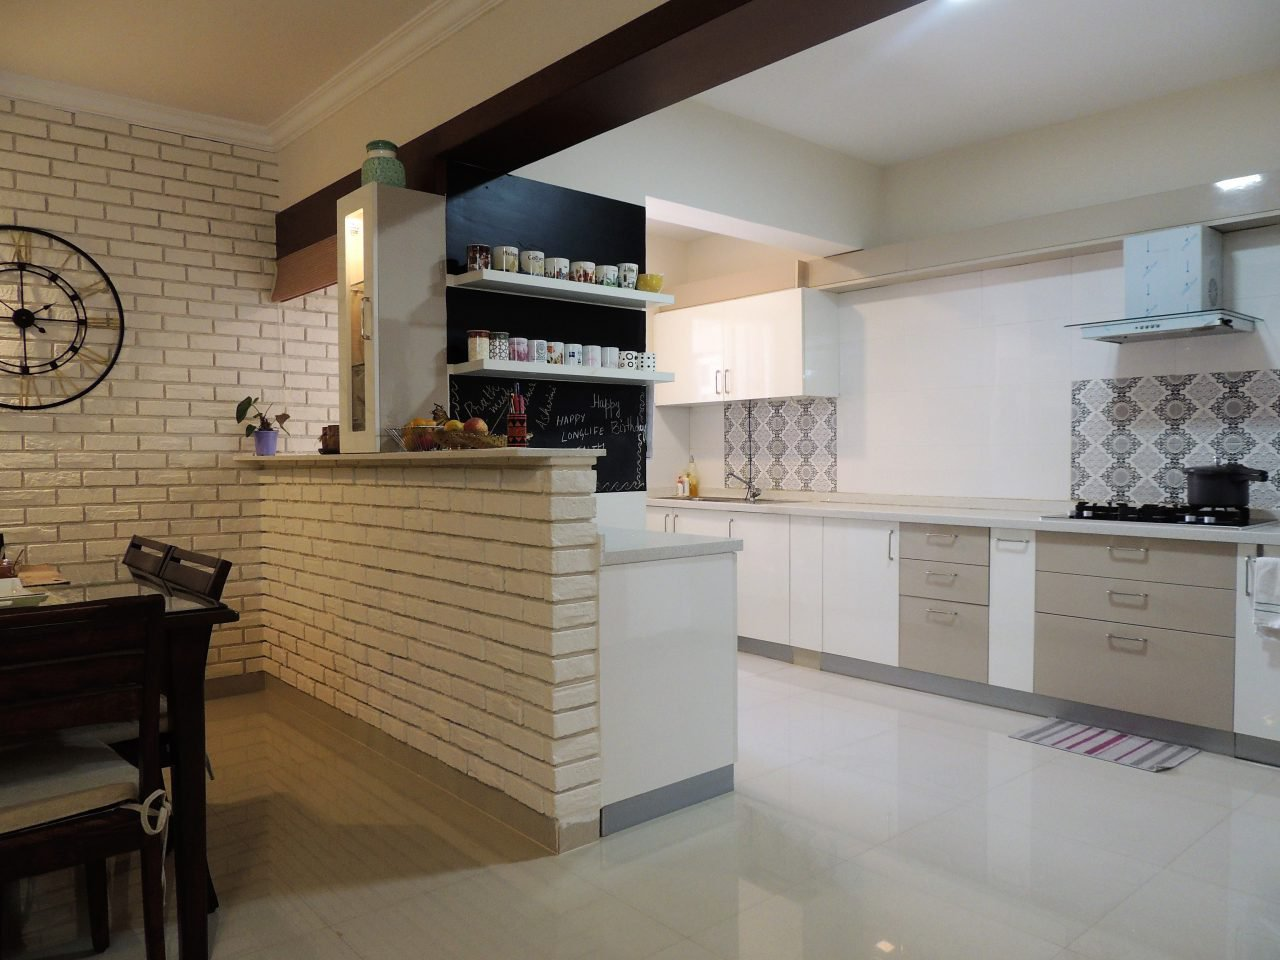 breakfast counter and kitchen